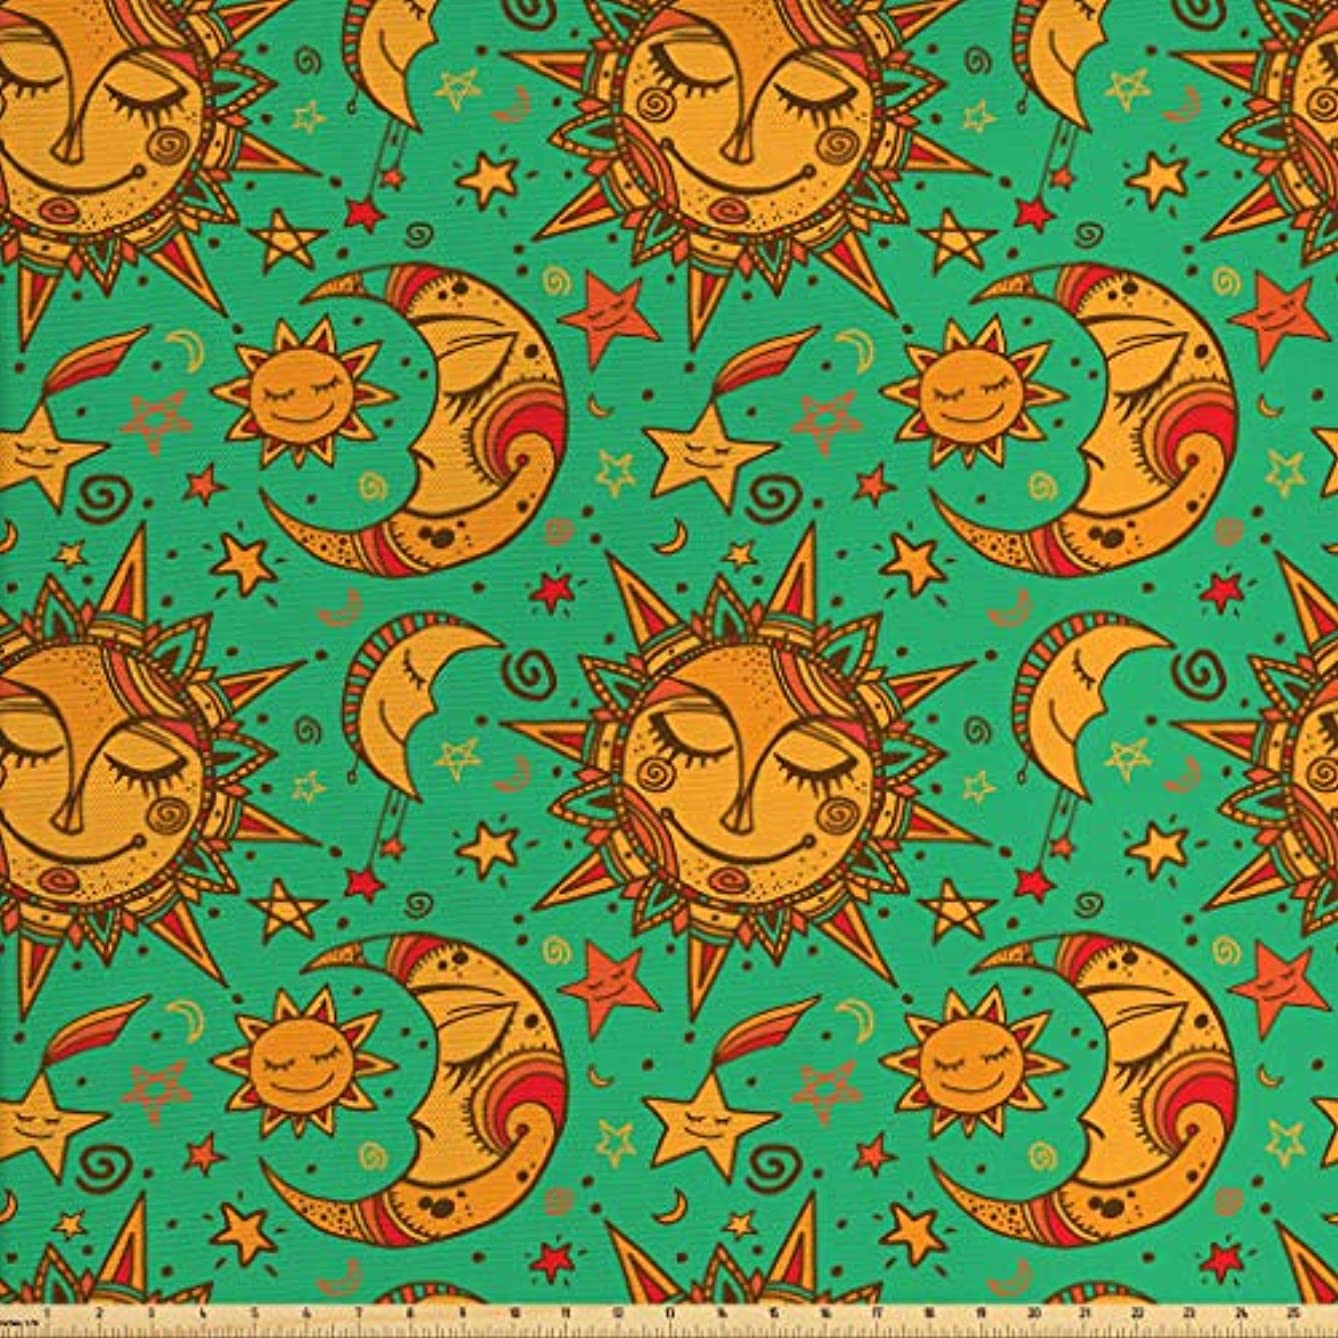 Lunarable Sun Moon Fabric The Yard, Celestial Pattern Tribal Inspirations Stars Faces, Decorative Fabric Upholstery Home Accents, 2 Yards, Sea Green Orange Marigold